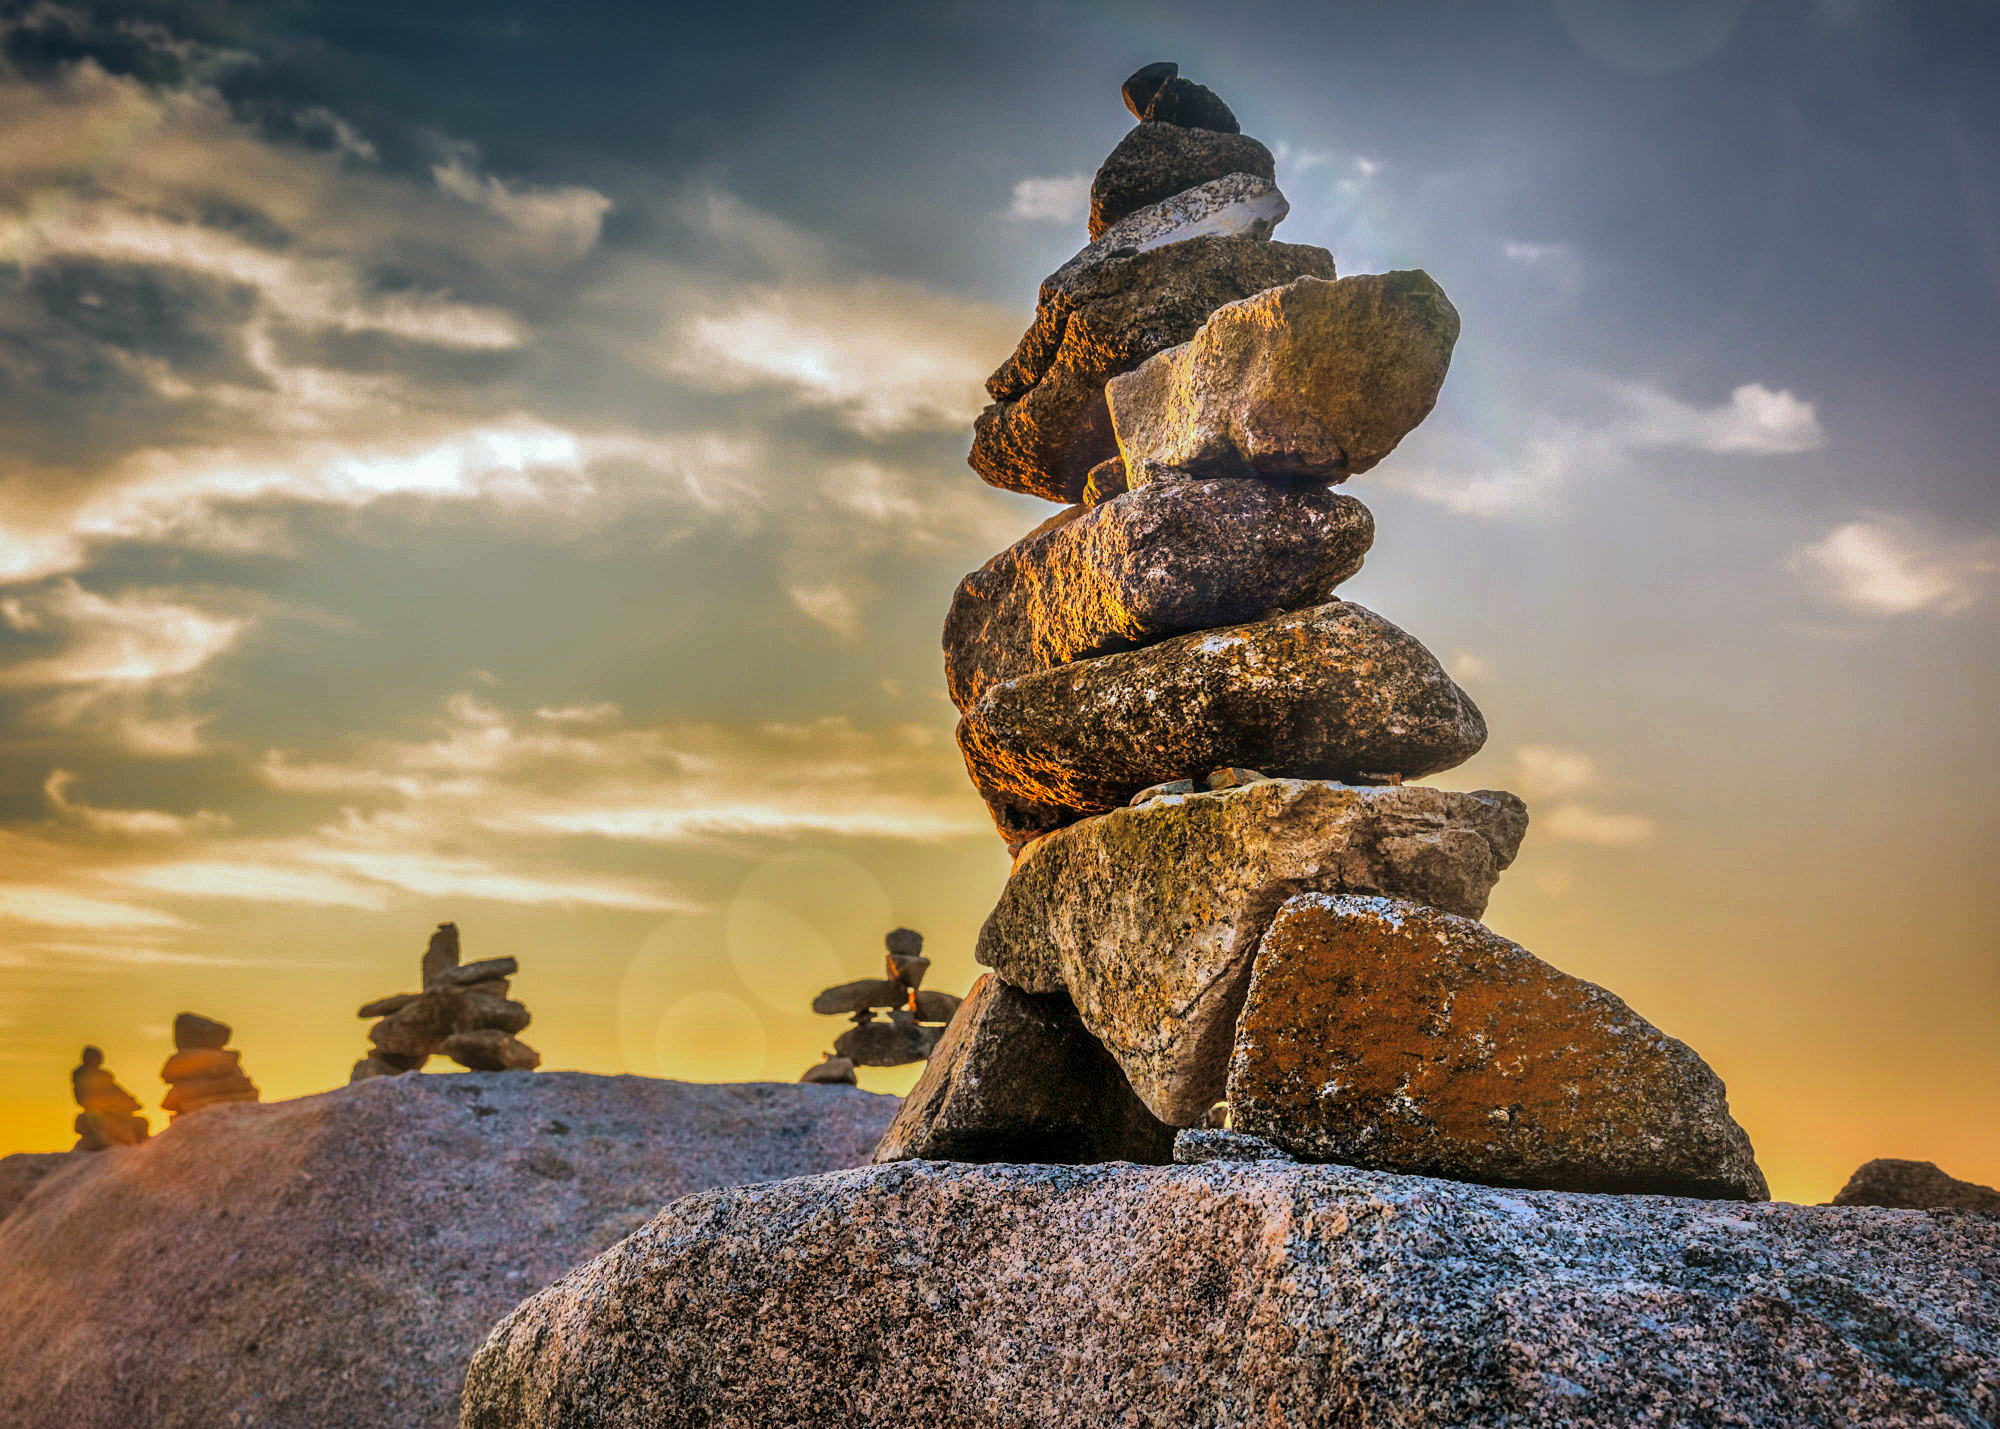 PH5VE training, workshops and conference speaking - Building meaning. A foundation that holds up any ambition. Above and beyond (Inuksuk Canada Peggy Cove)